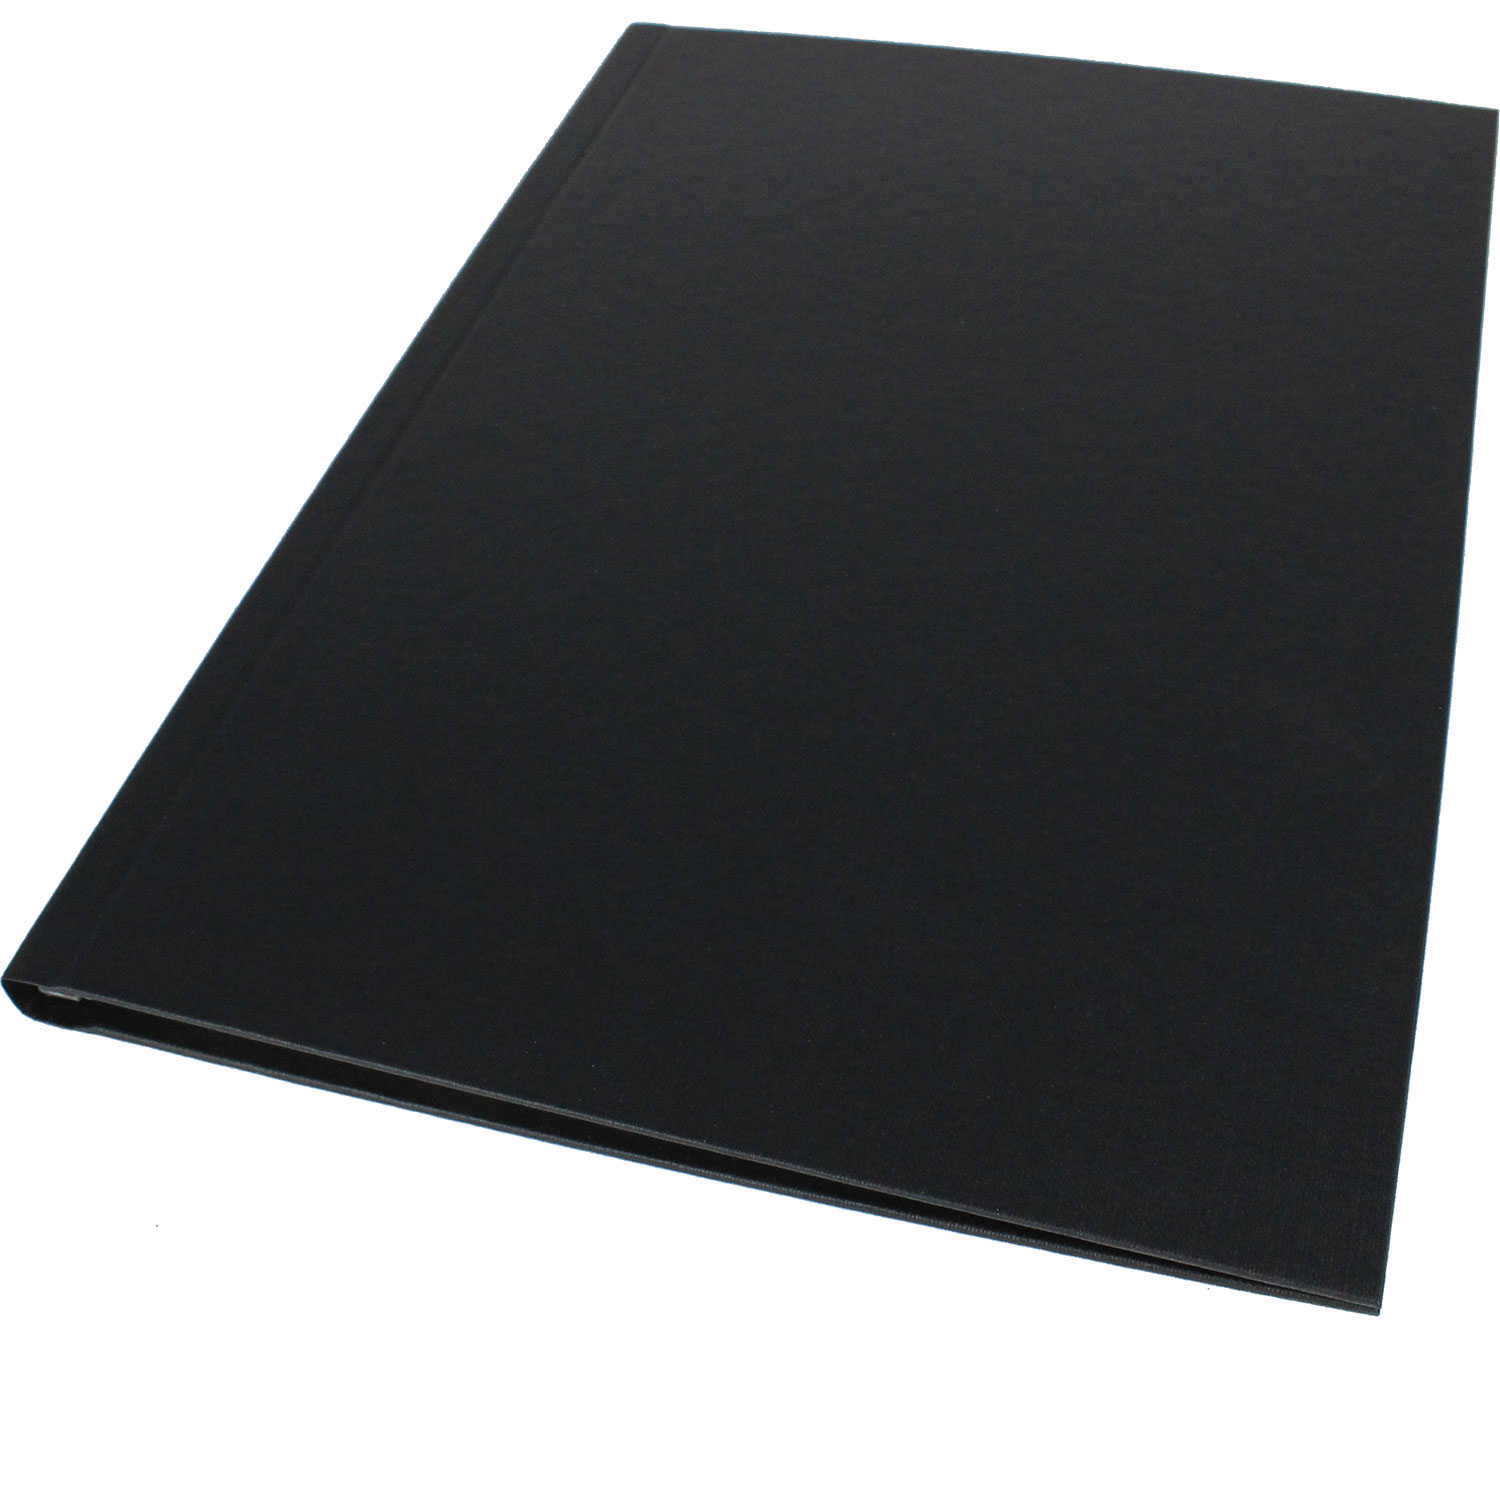 Impressbind A4 Hard Linen Binding Covers - Black